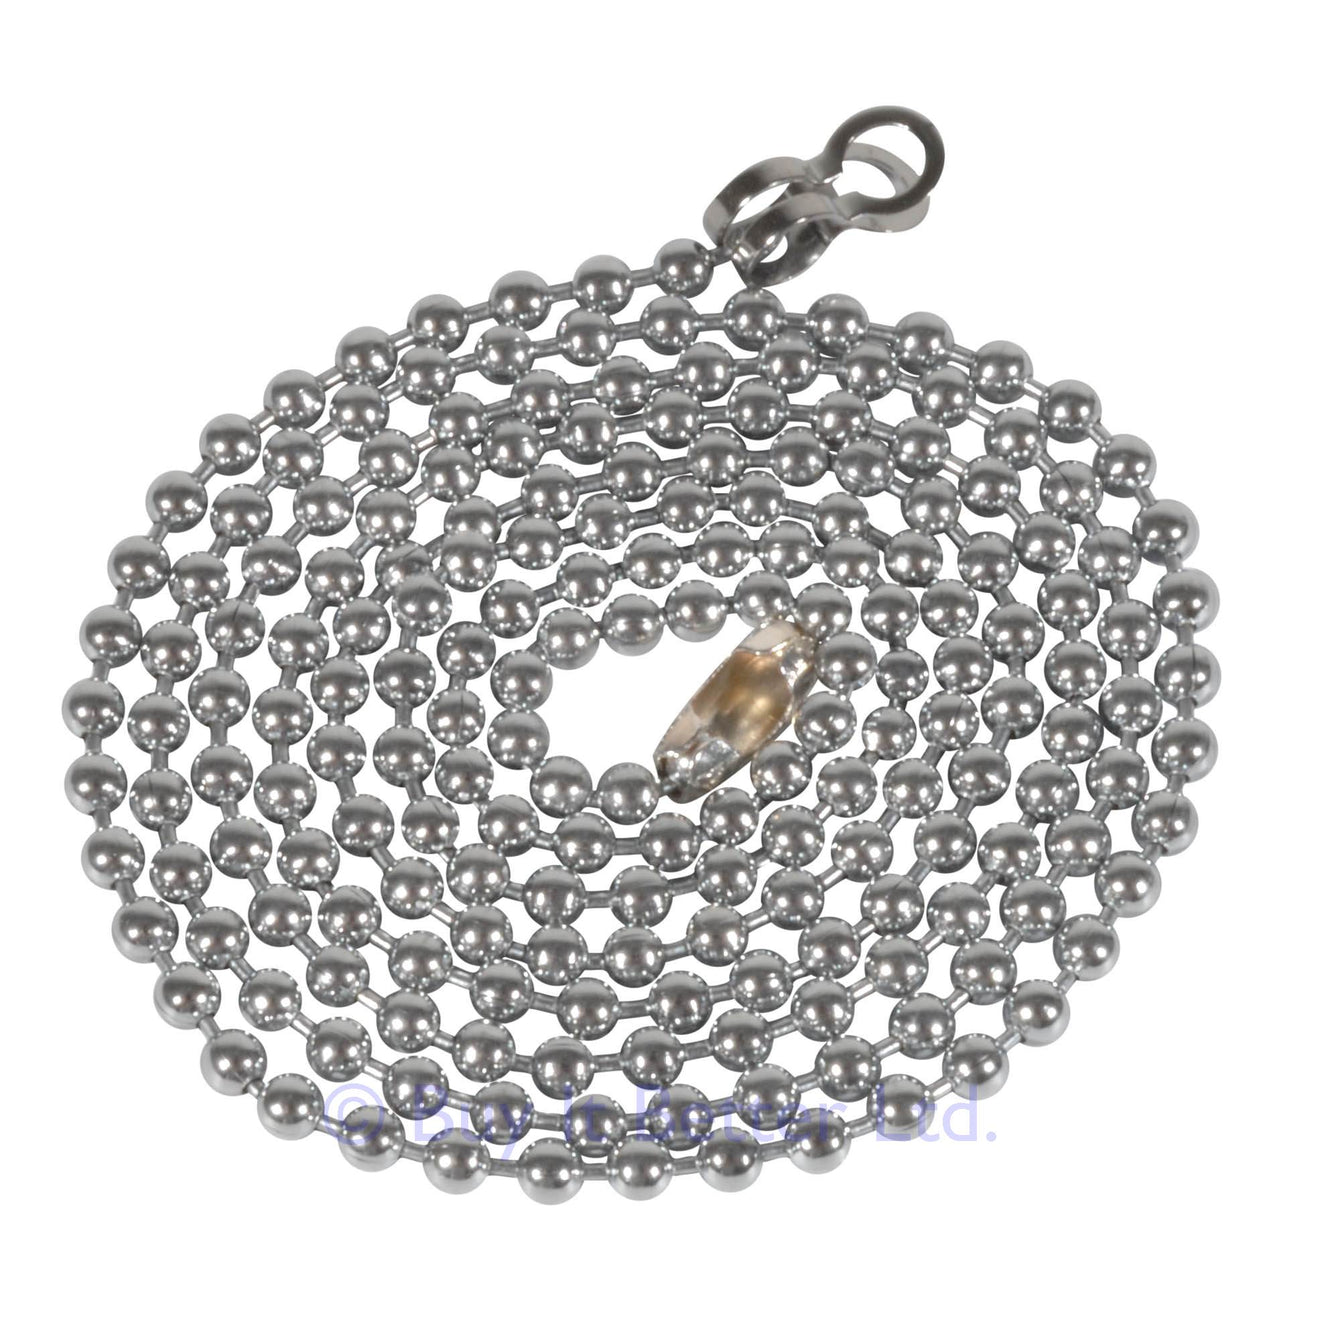 ElekTek Light Pull Chain Extension With Ball Chain Connector 800mm Long - Buy It Better Nickel